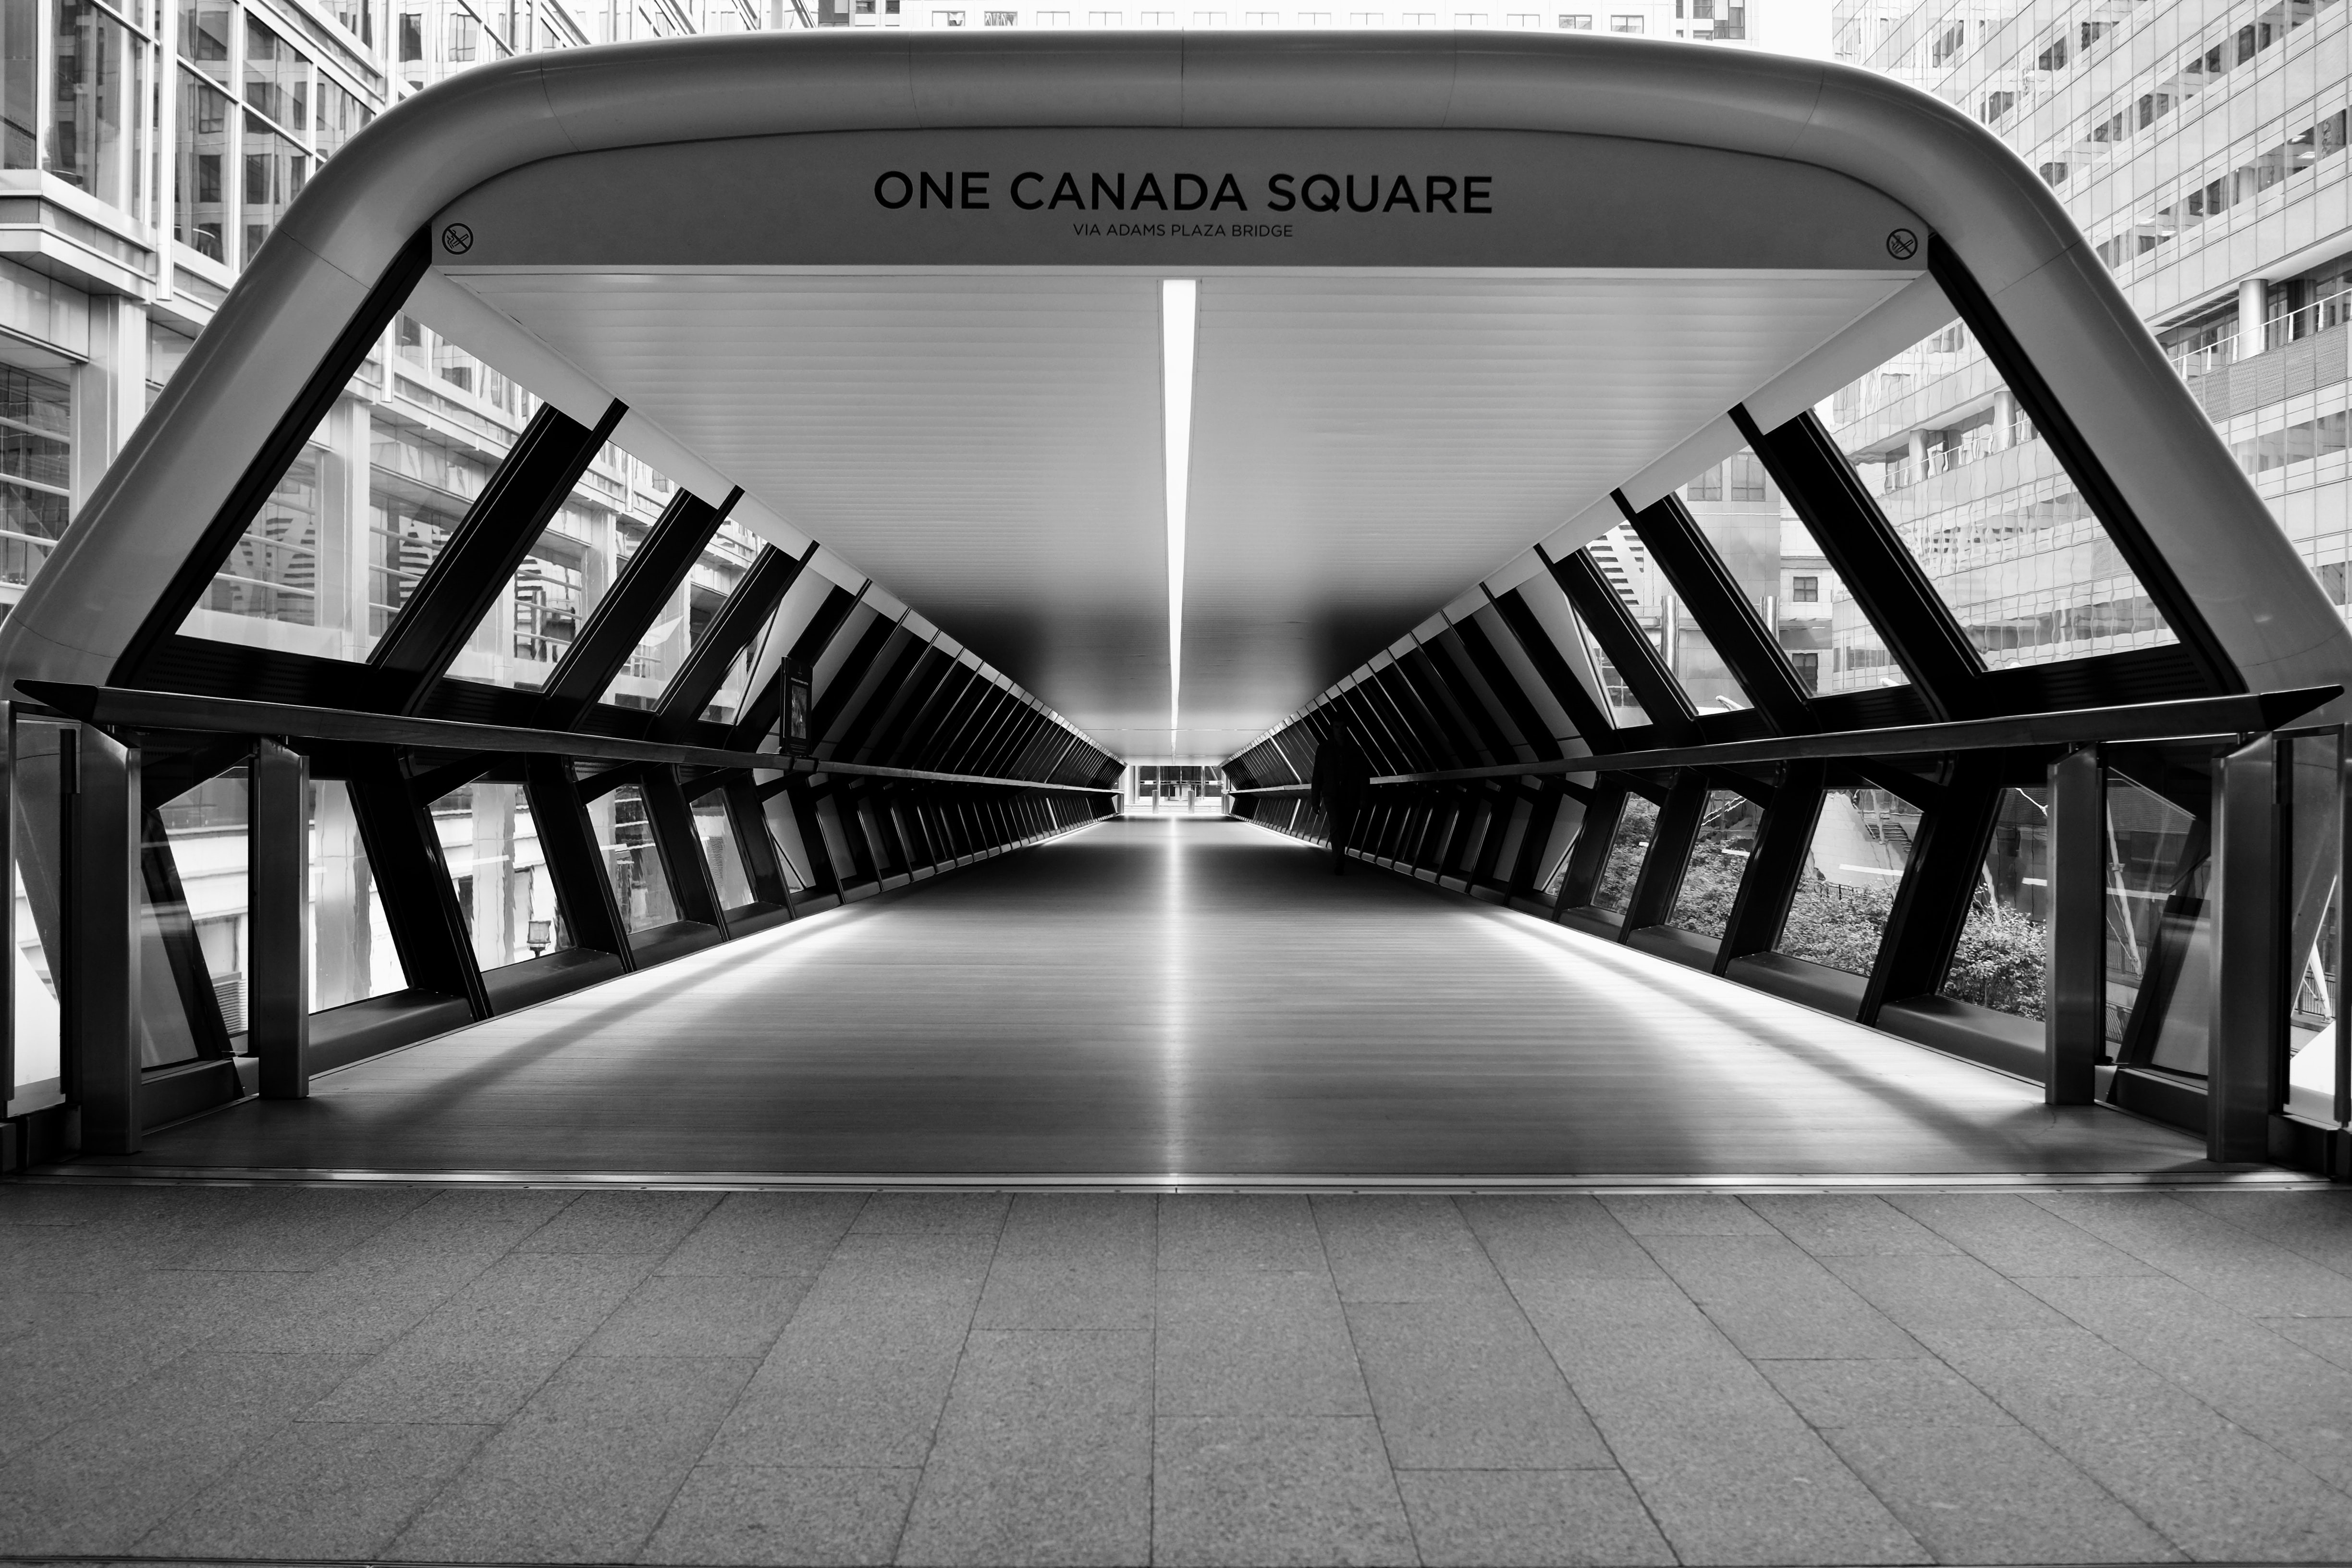 gray scale photo of One Canada Square pathway